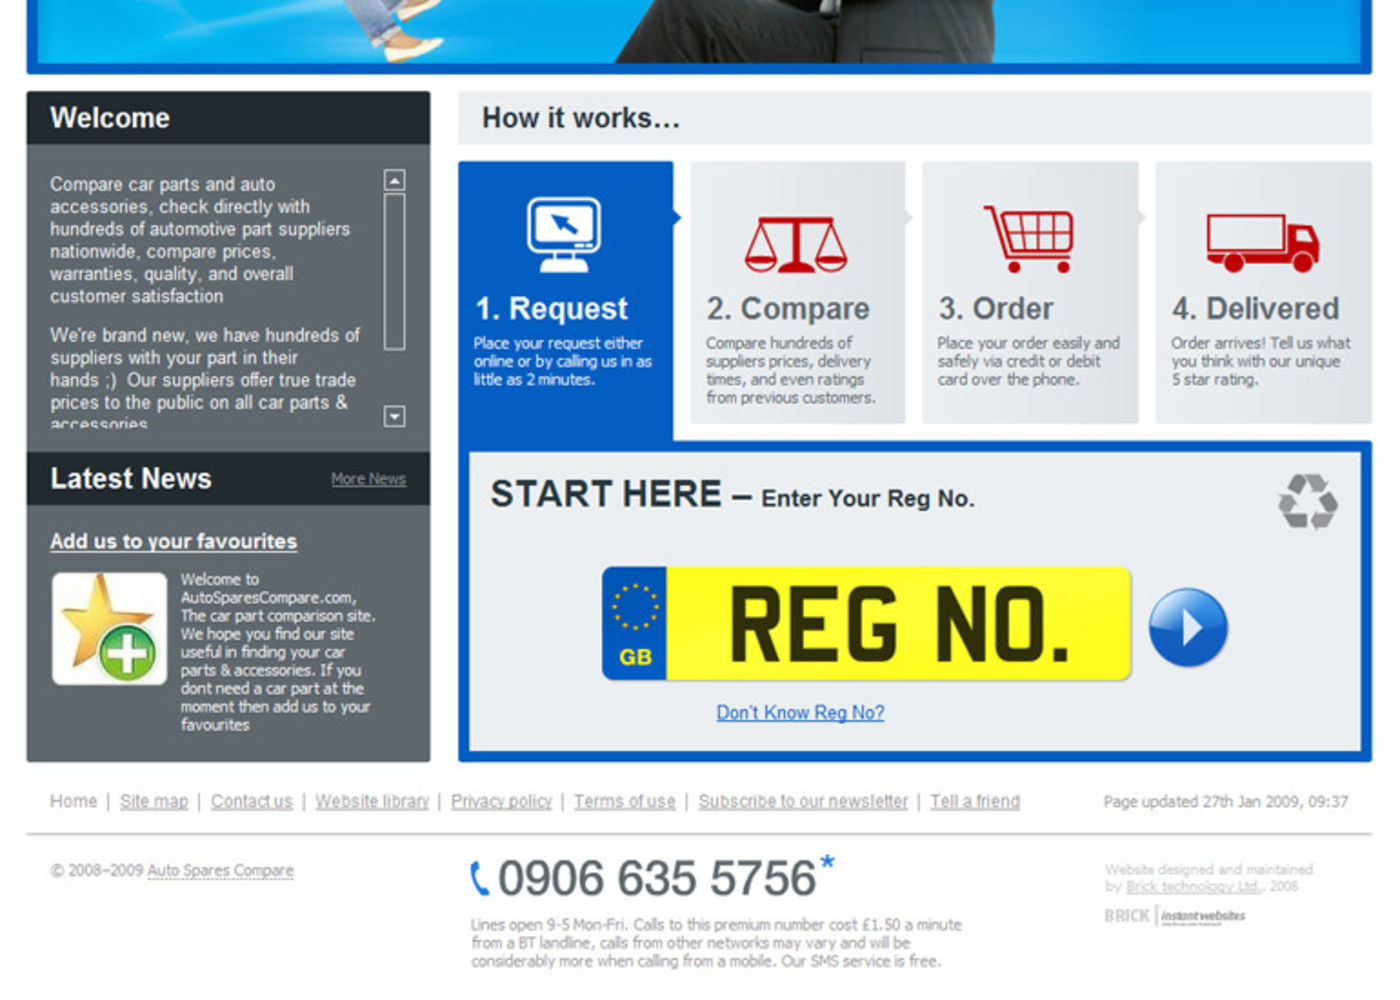 Auto Spares Compare Homepage footer